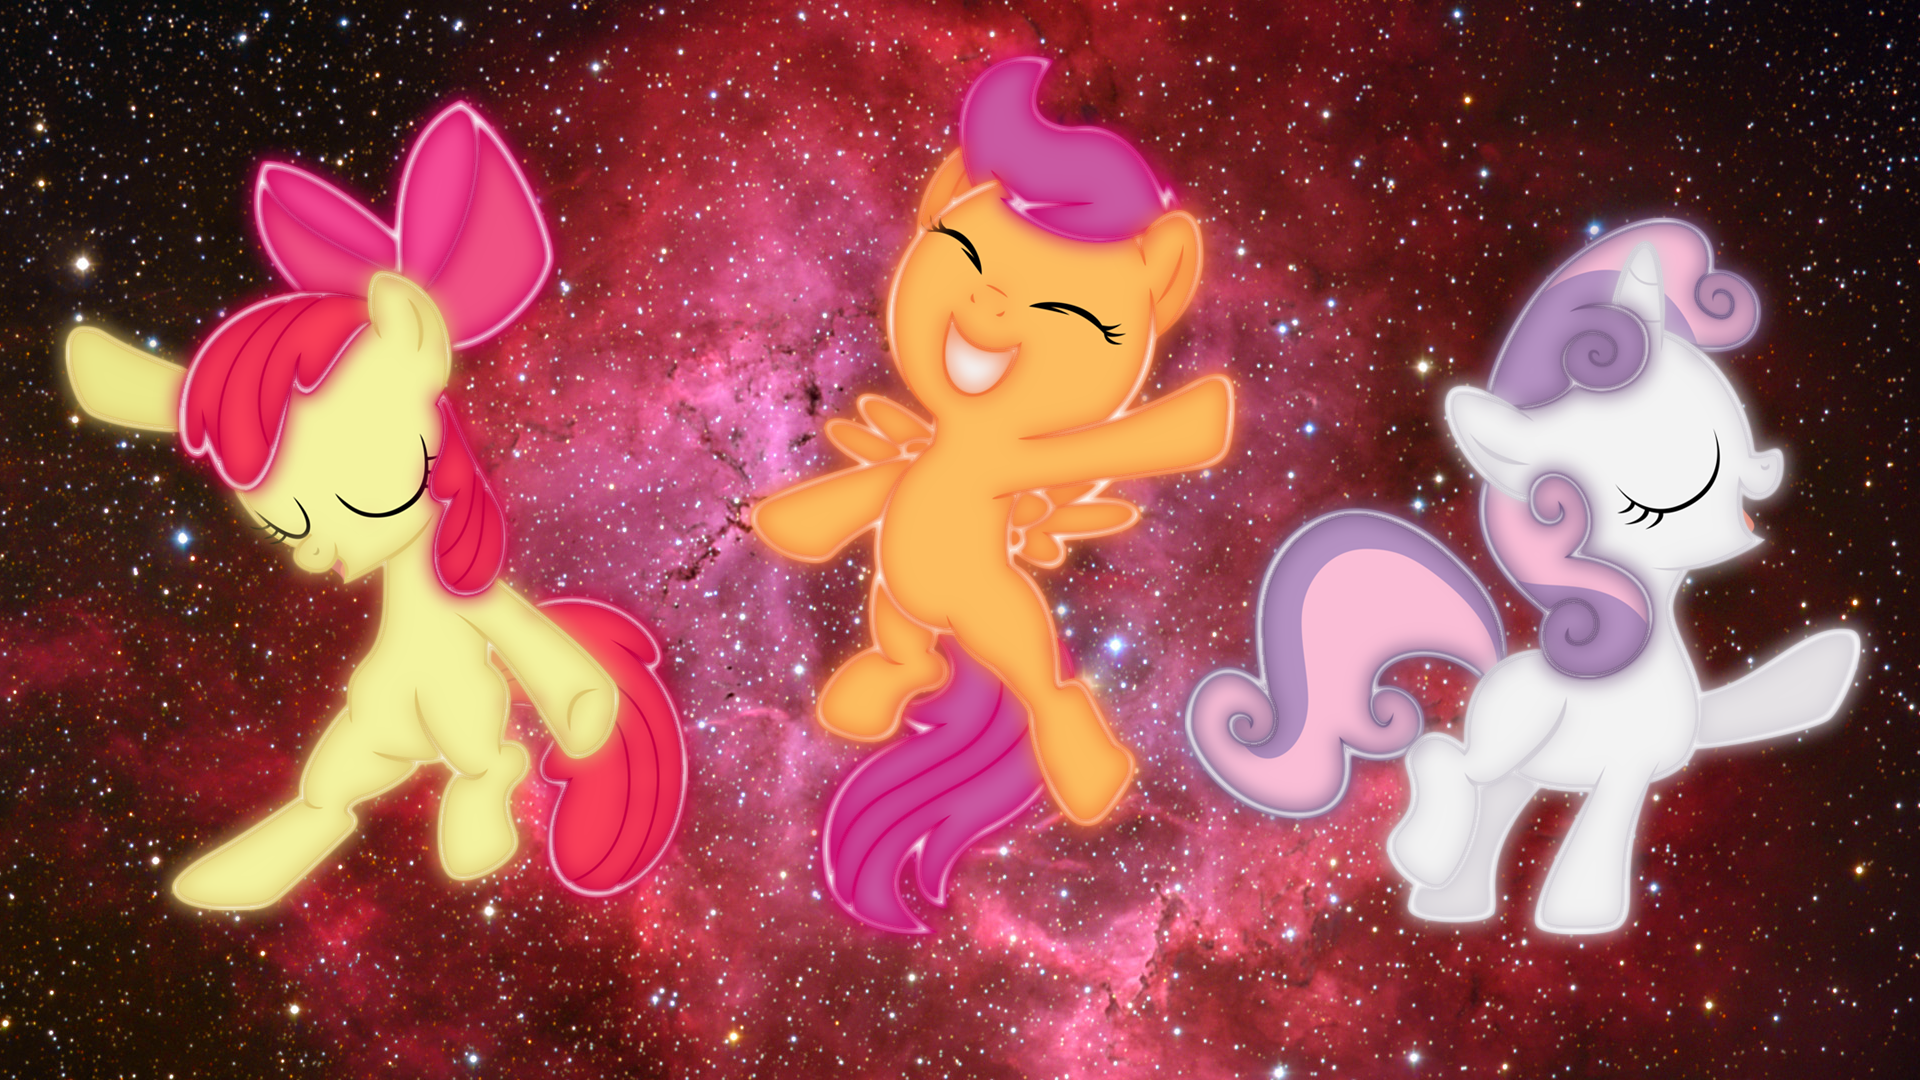 Cutie Mark Crusader Wallpaper Ponies! by DragonKittyPi